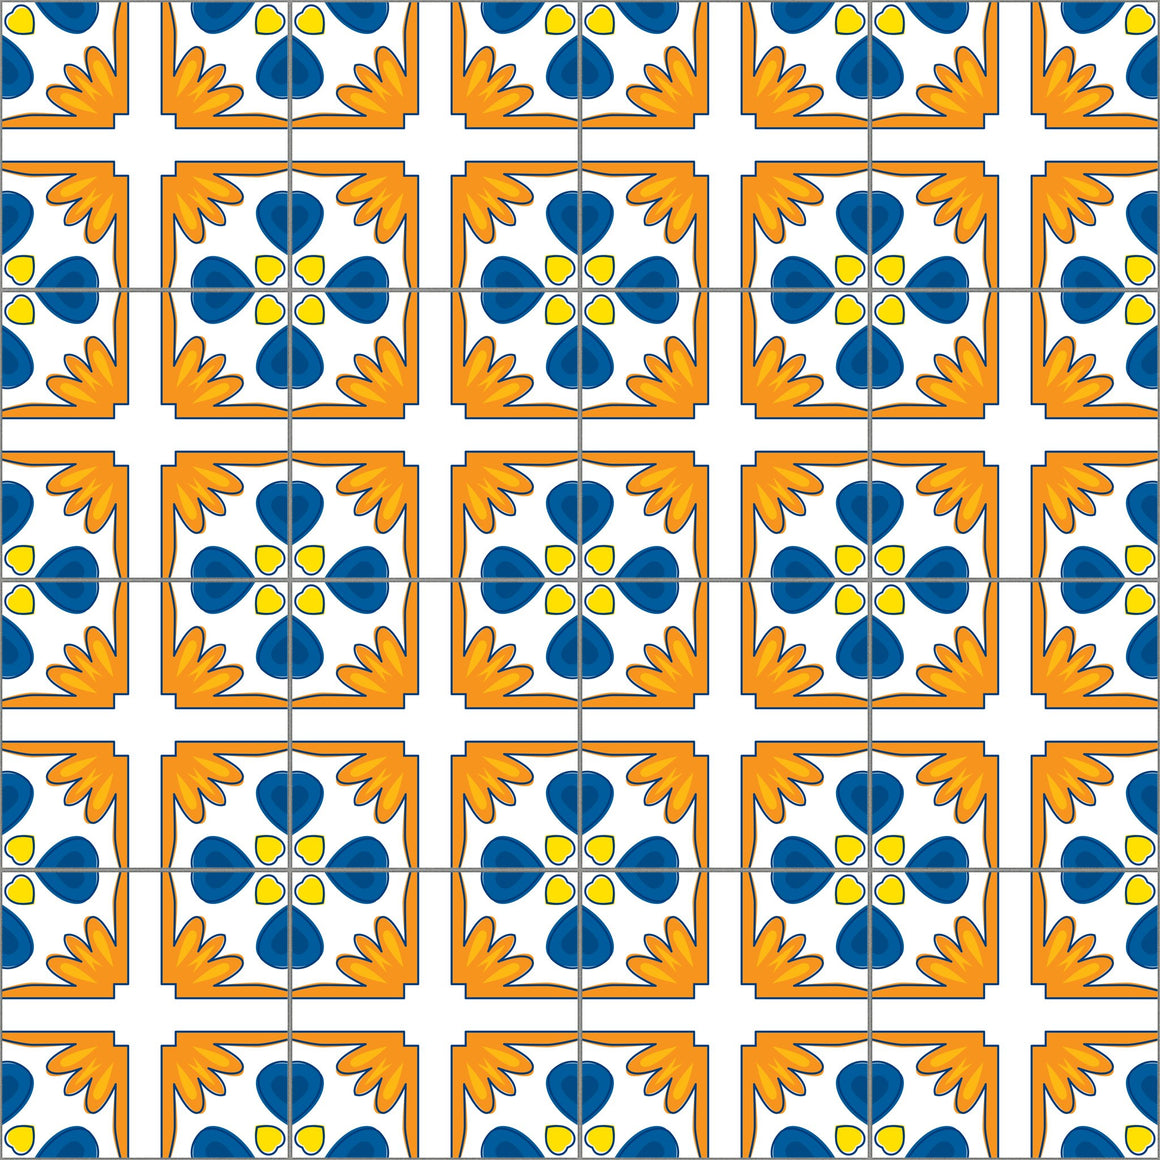 Tile stickers - KP069